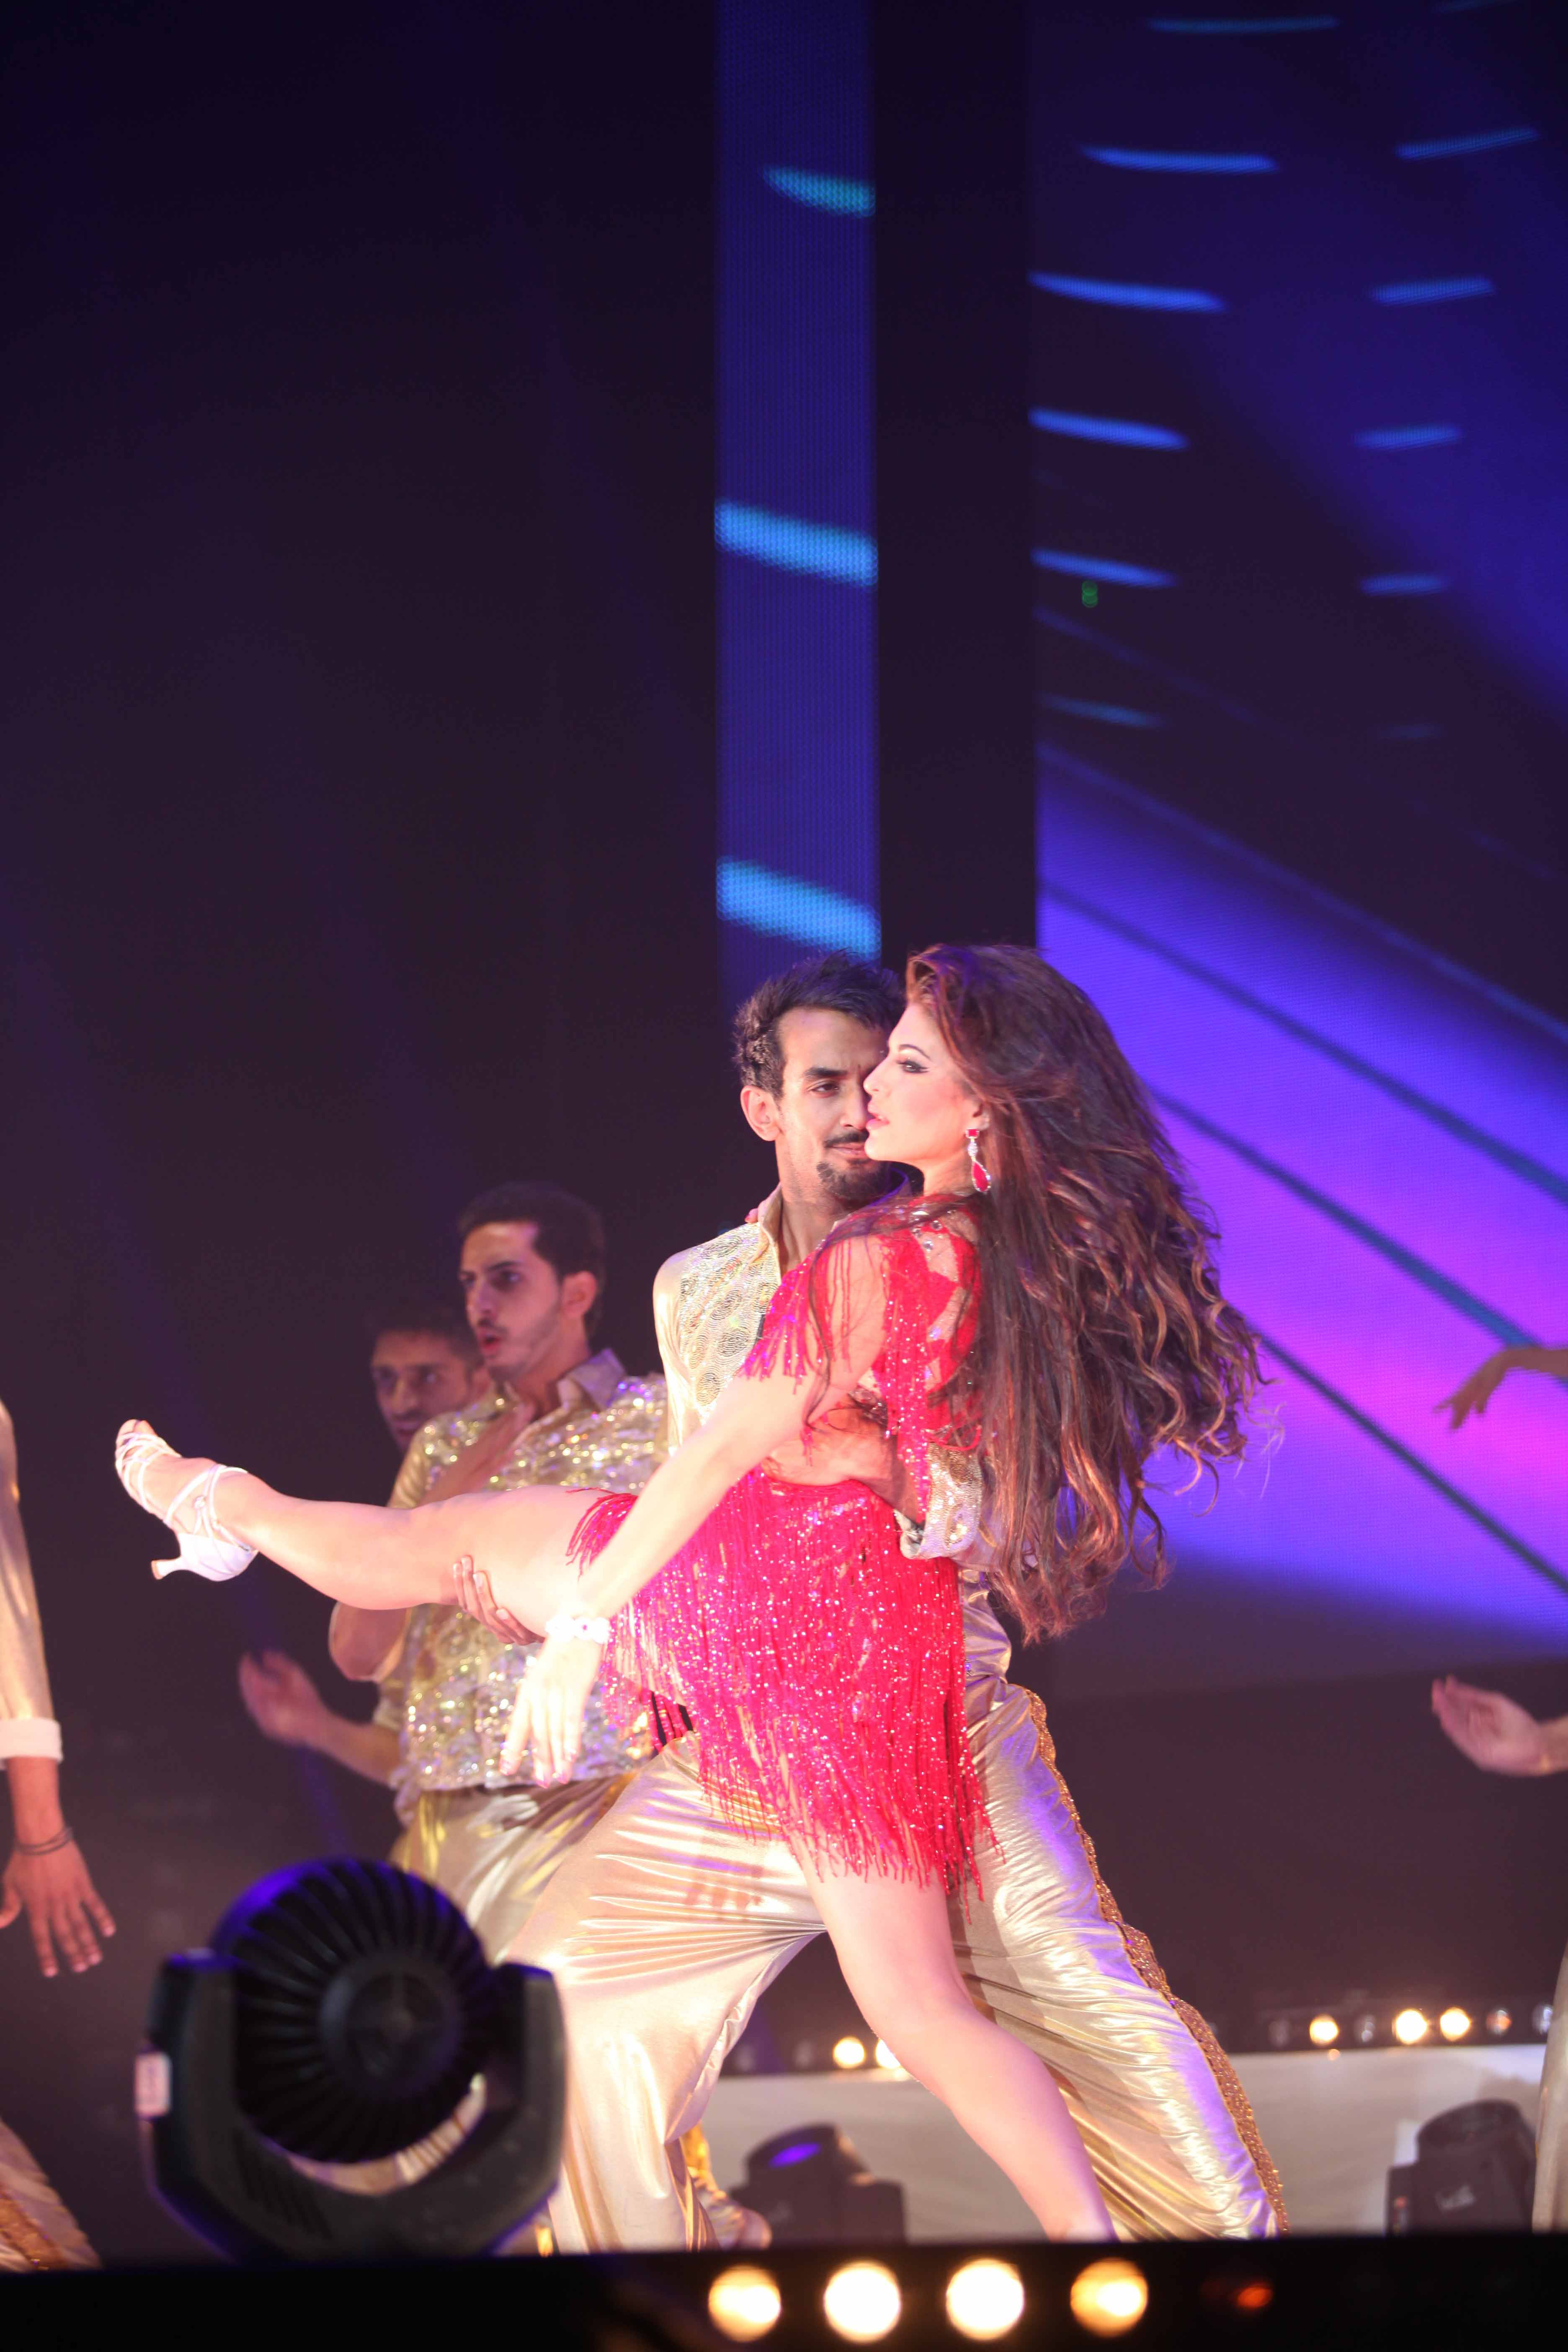 naz-live-on-stage-with-jacqueiline